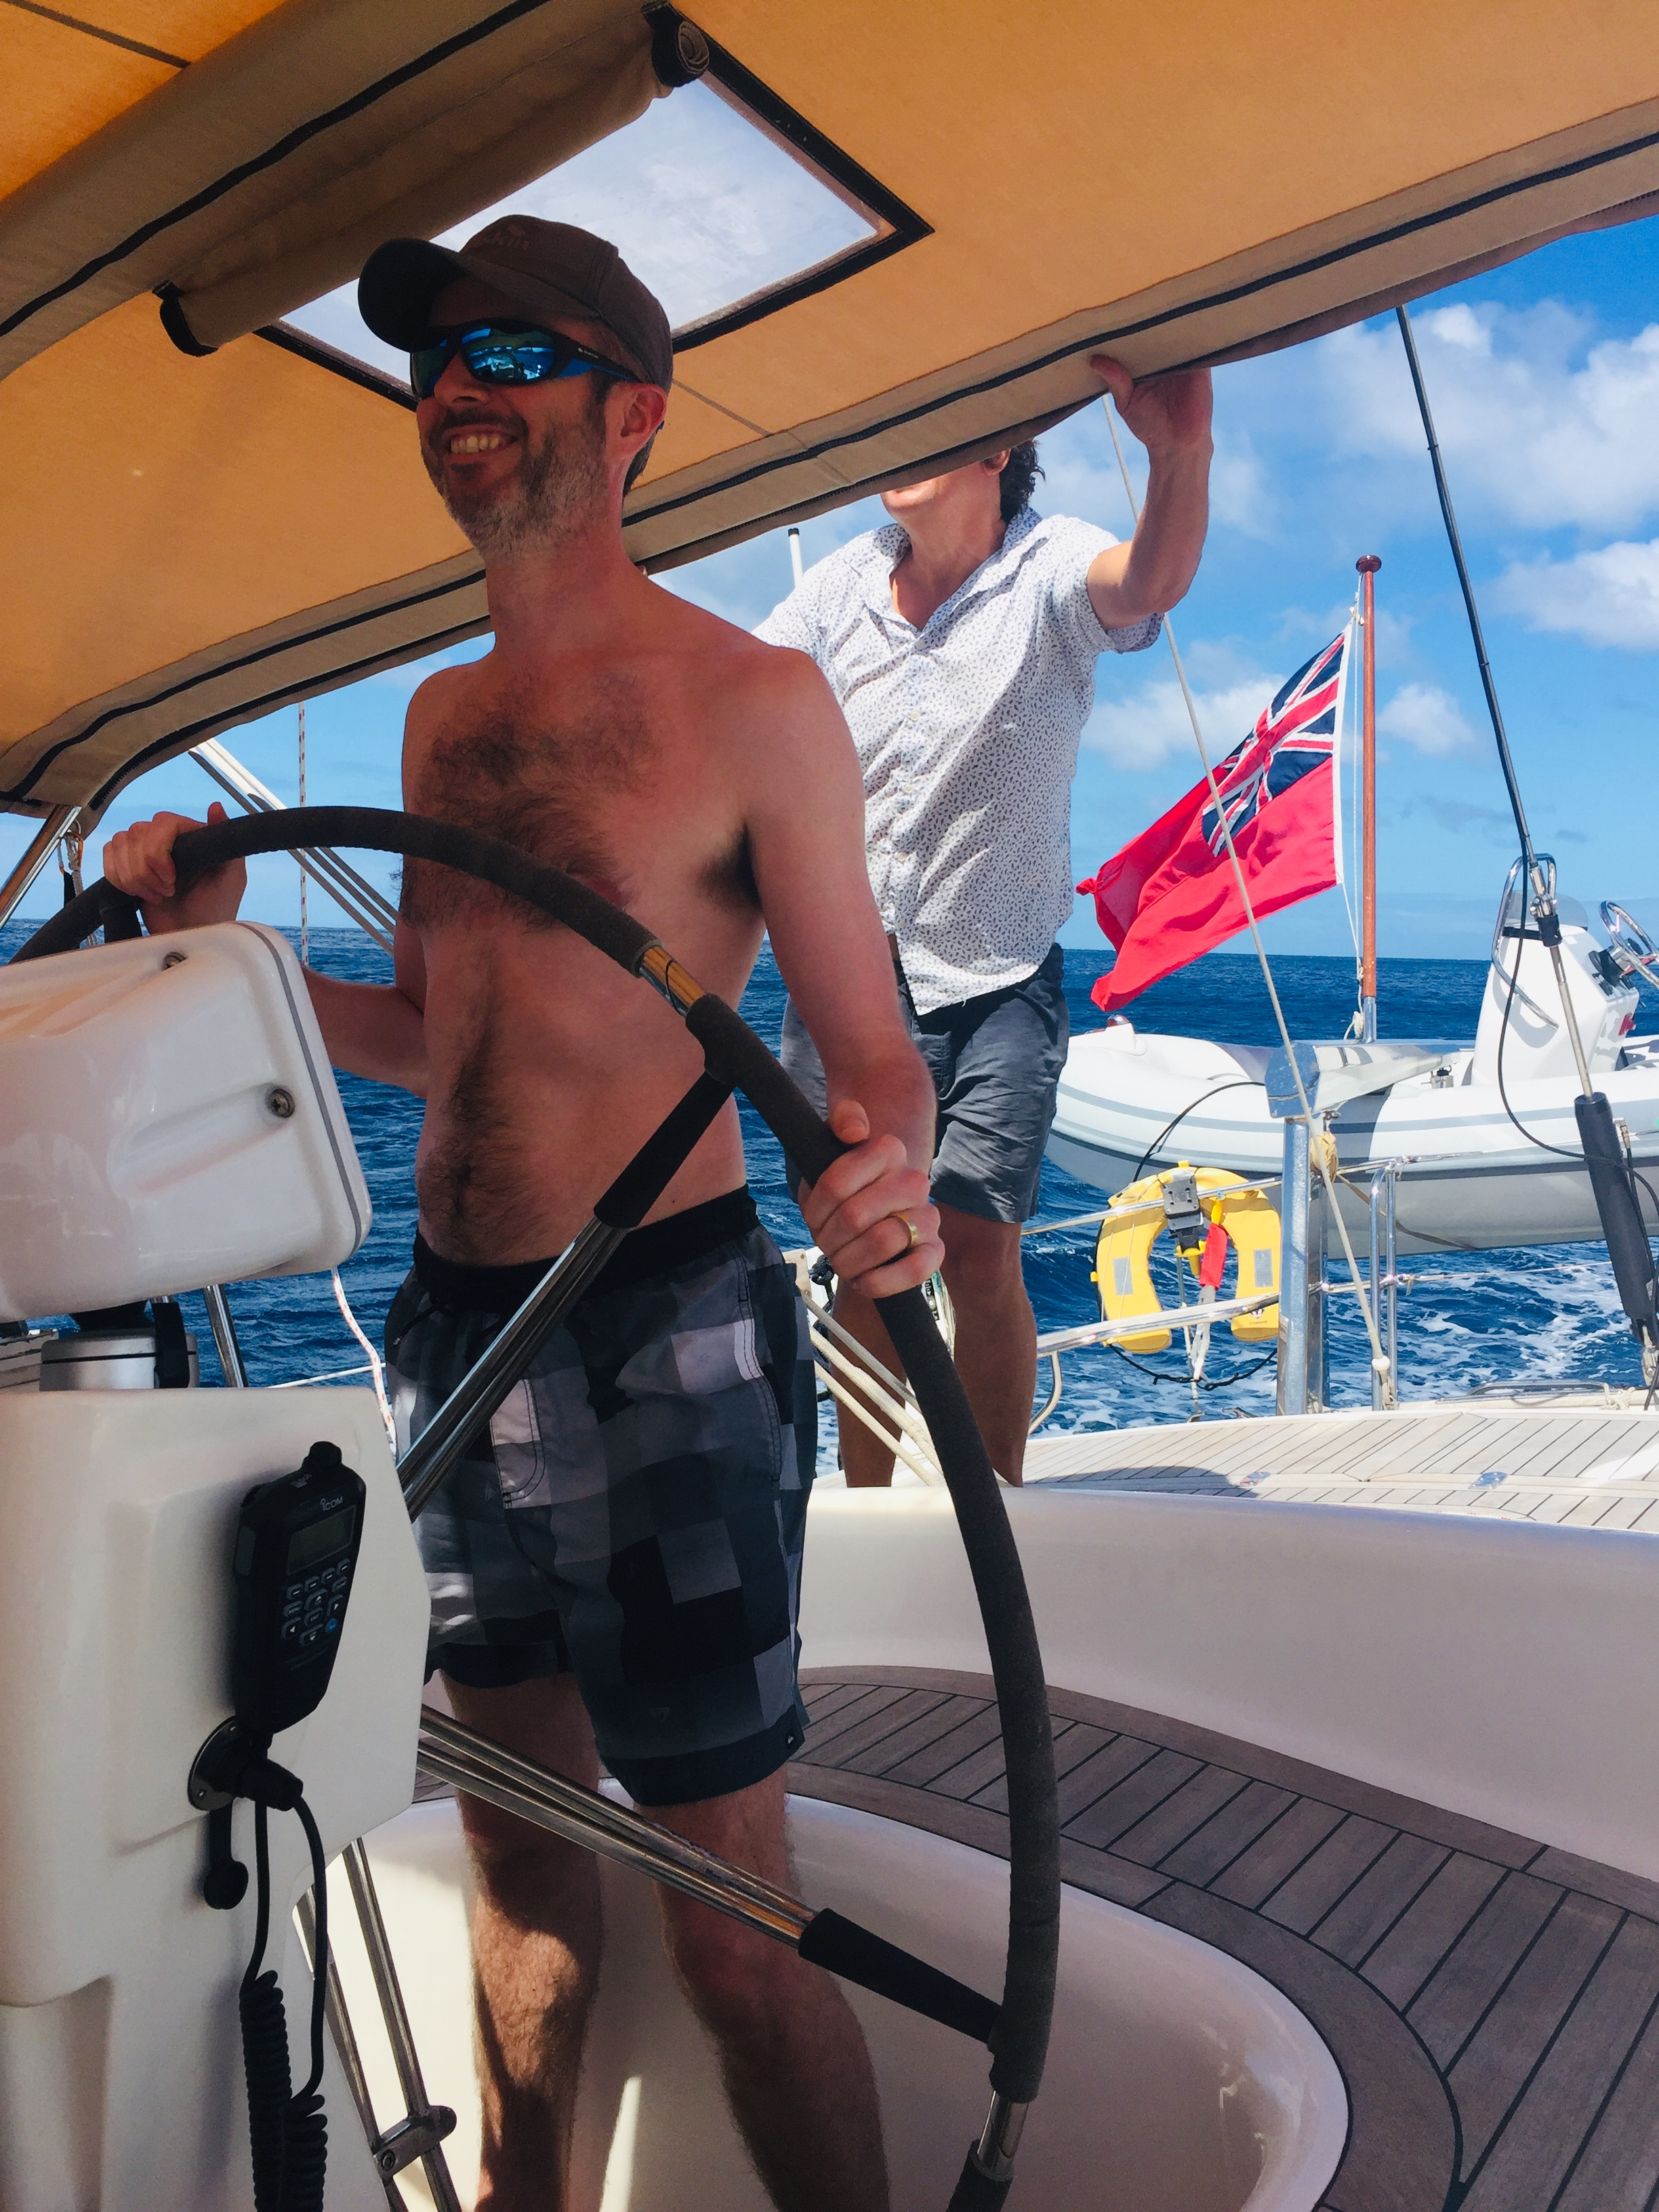 Rob Helming to Soufriere